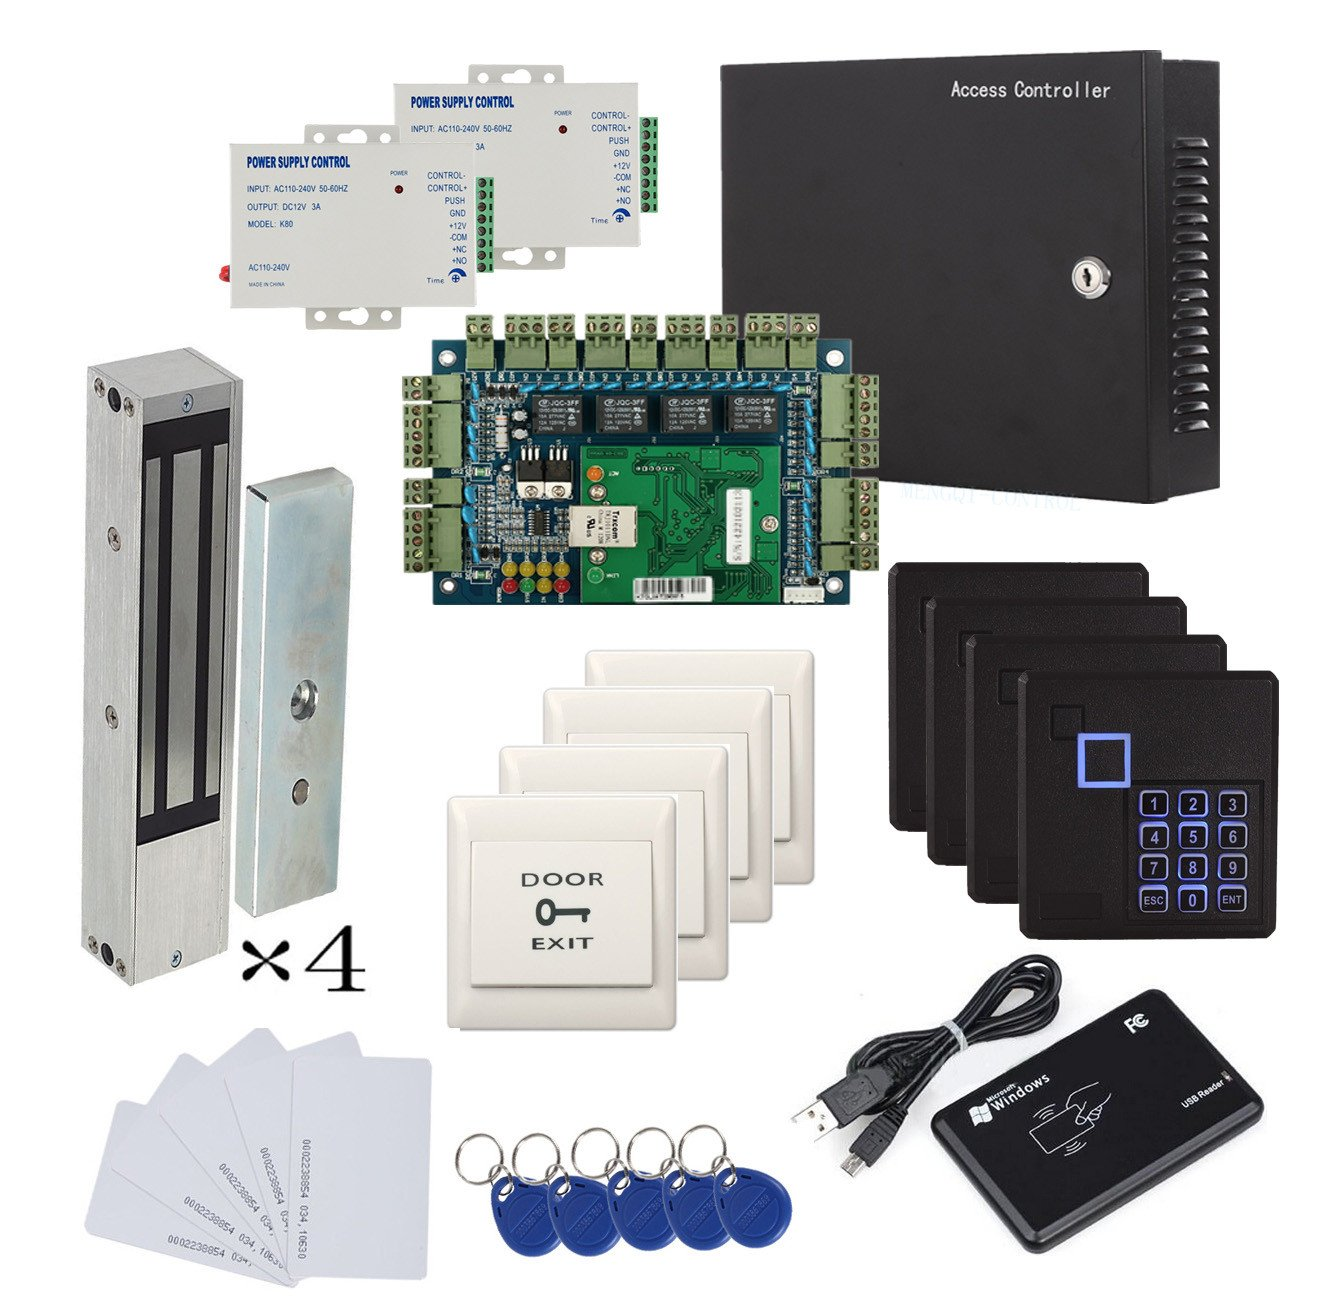 1200lbs Mag Lock Wiegand 4 Door Control Panel System Ceeco Metal Keypad Wiring Diagram Usb Rfid Card Reader Extra Power Unit Push To Exit Button Rfd Keychains Cards